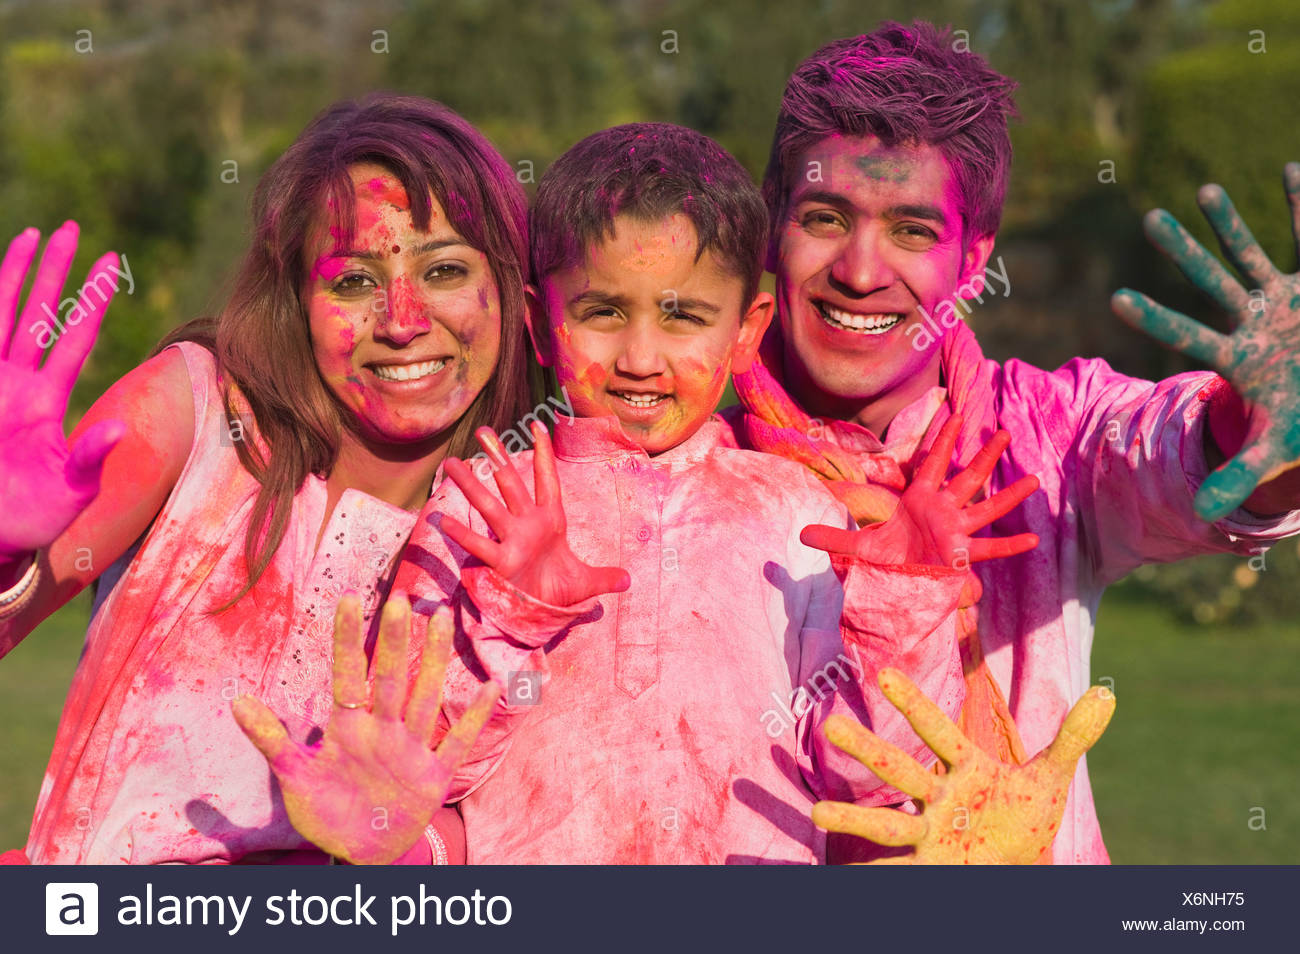 Family showing colorful hands on Holi Stock Photo: 279528345 - Alamy